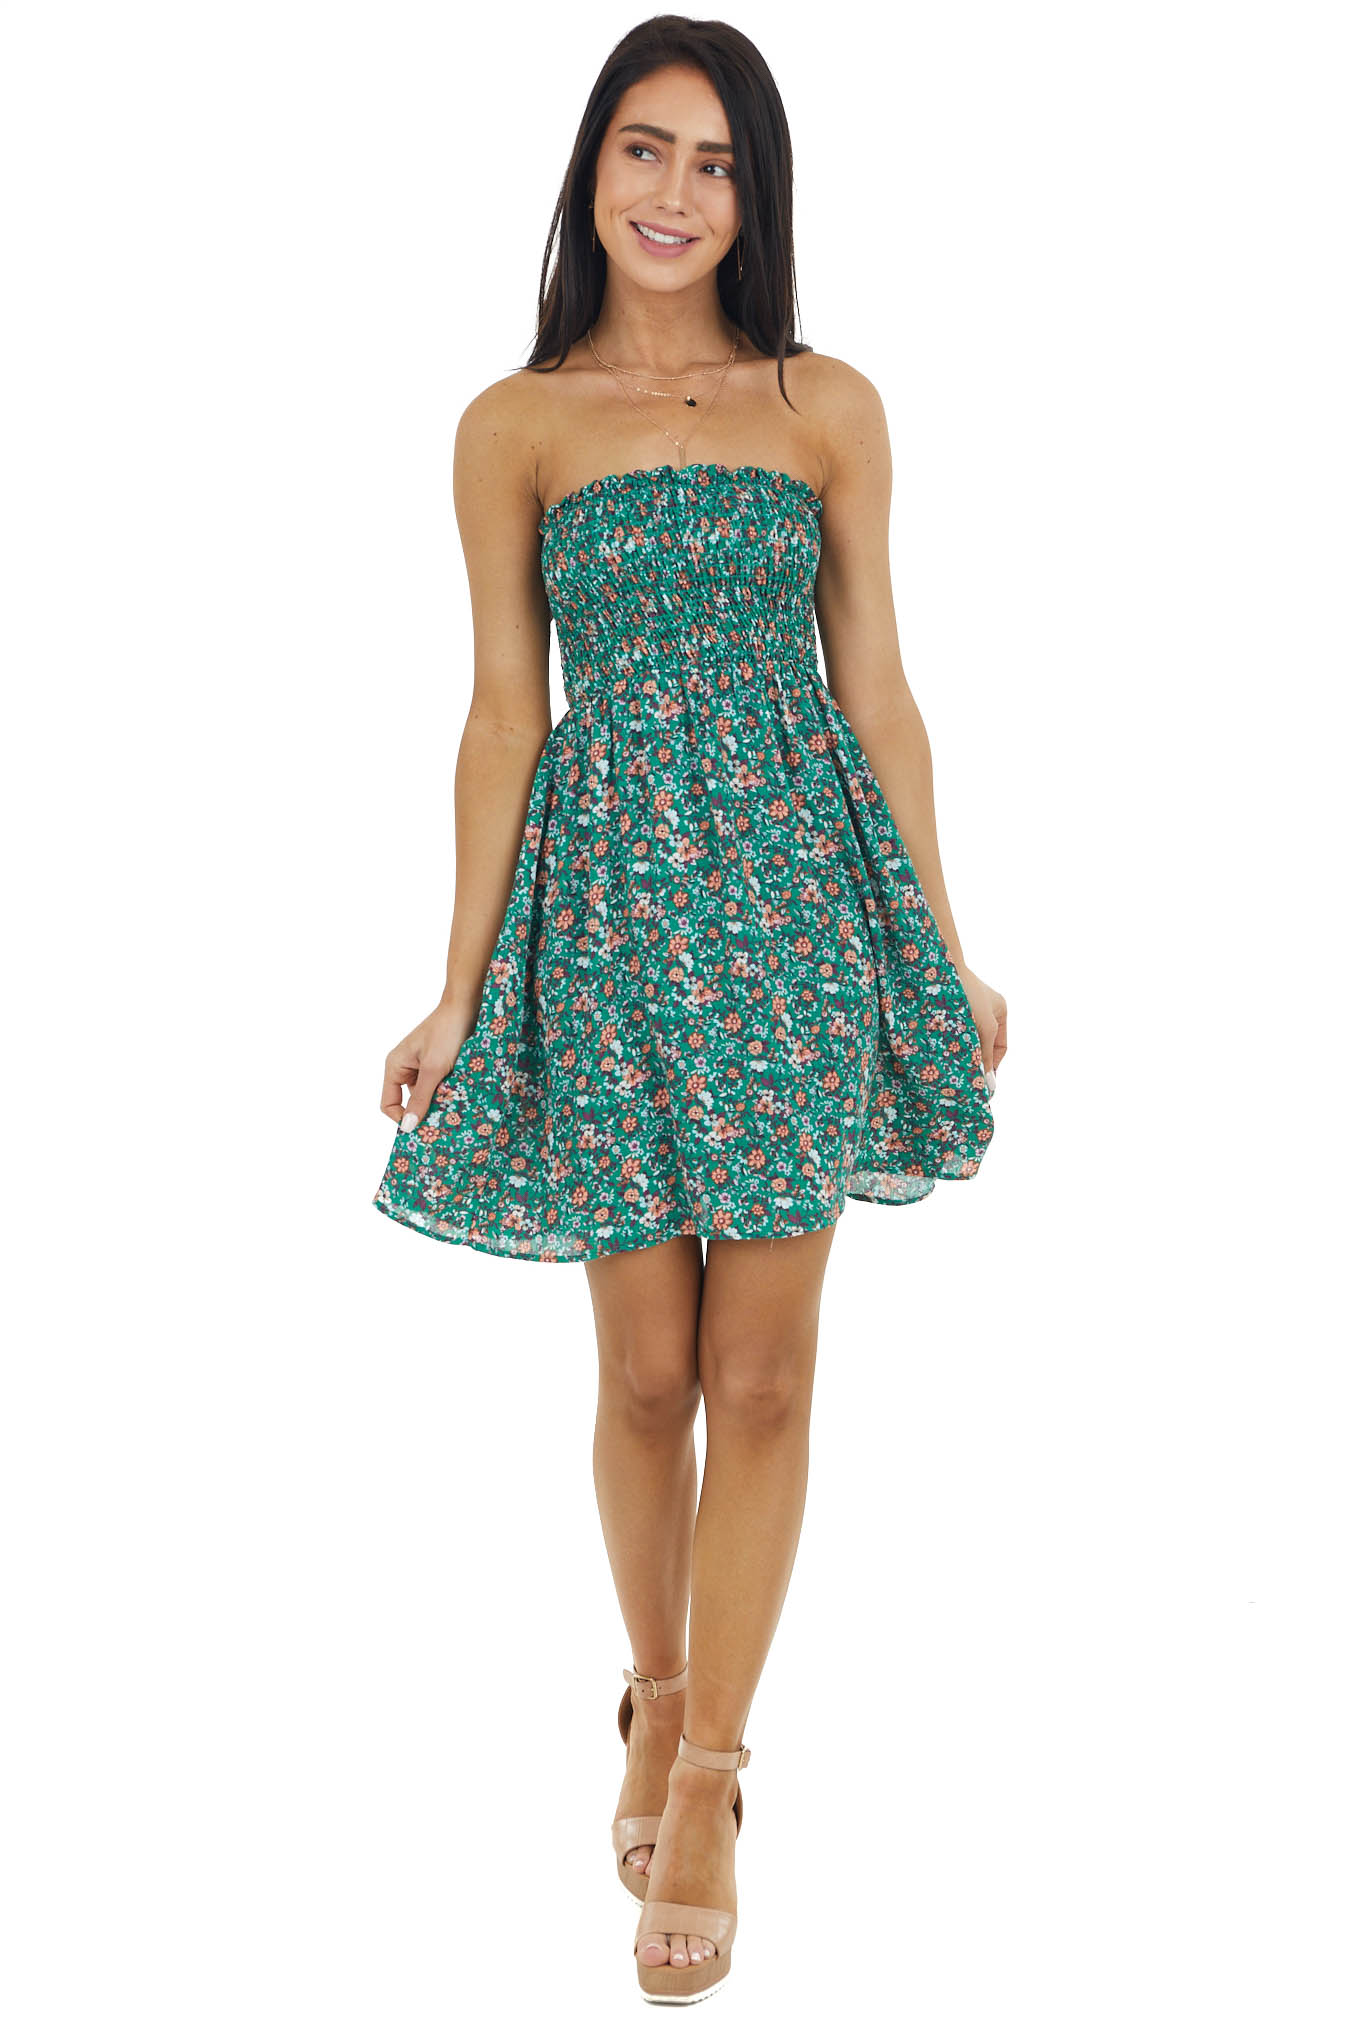 Pine Ditsy Floral Strapless Mini Dress with Smocked Bust